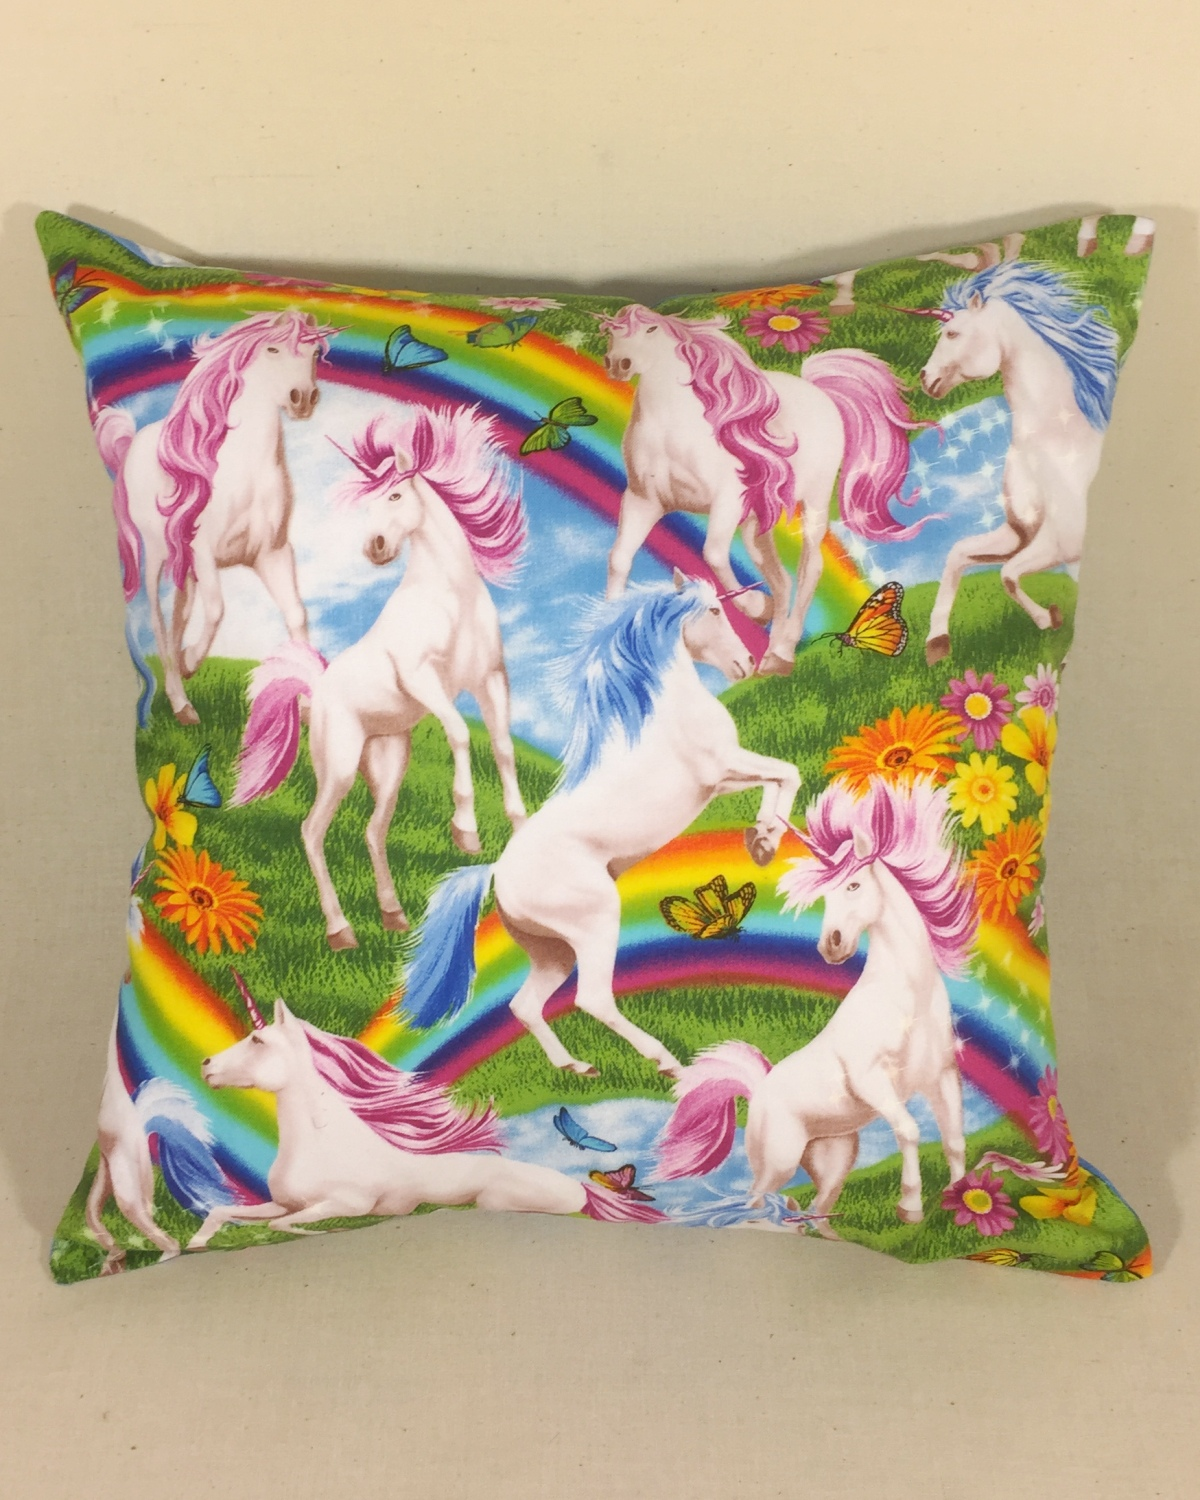 Unicorns & Rainbows - handmade scatter cushion